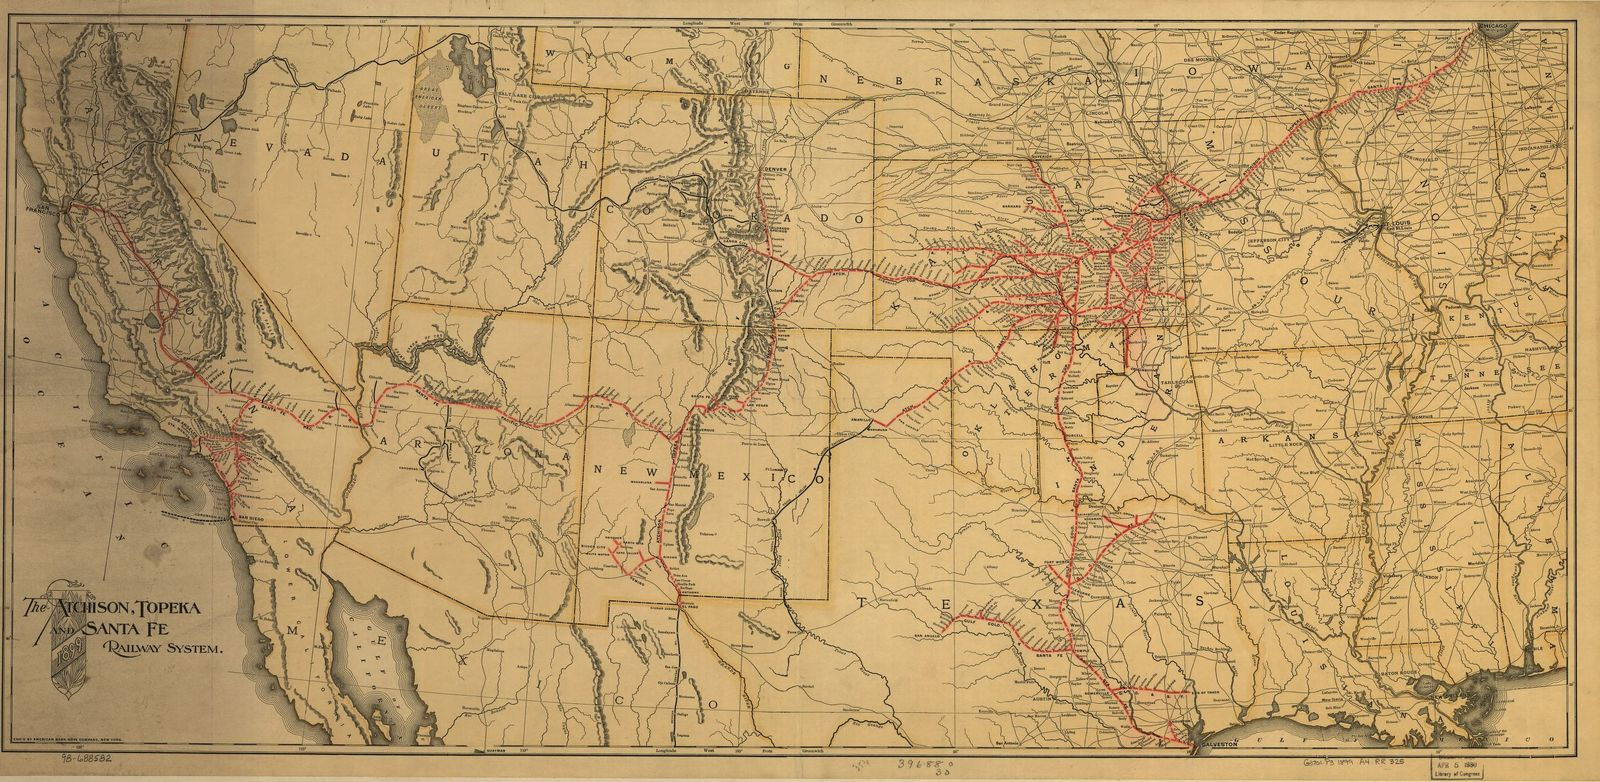 The Atchison, Topeka and the Santa Fe railroad system, 1899.